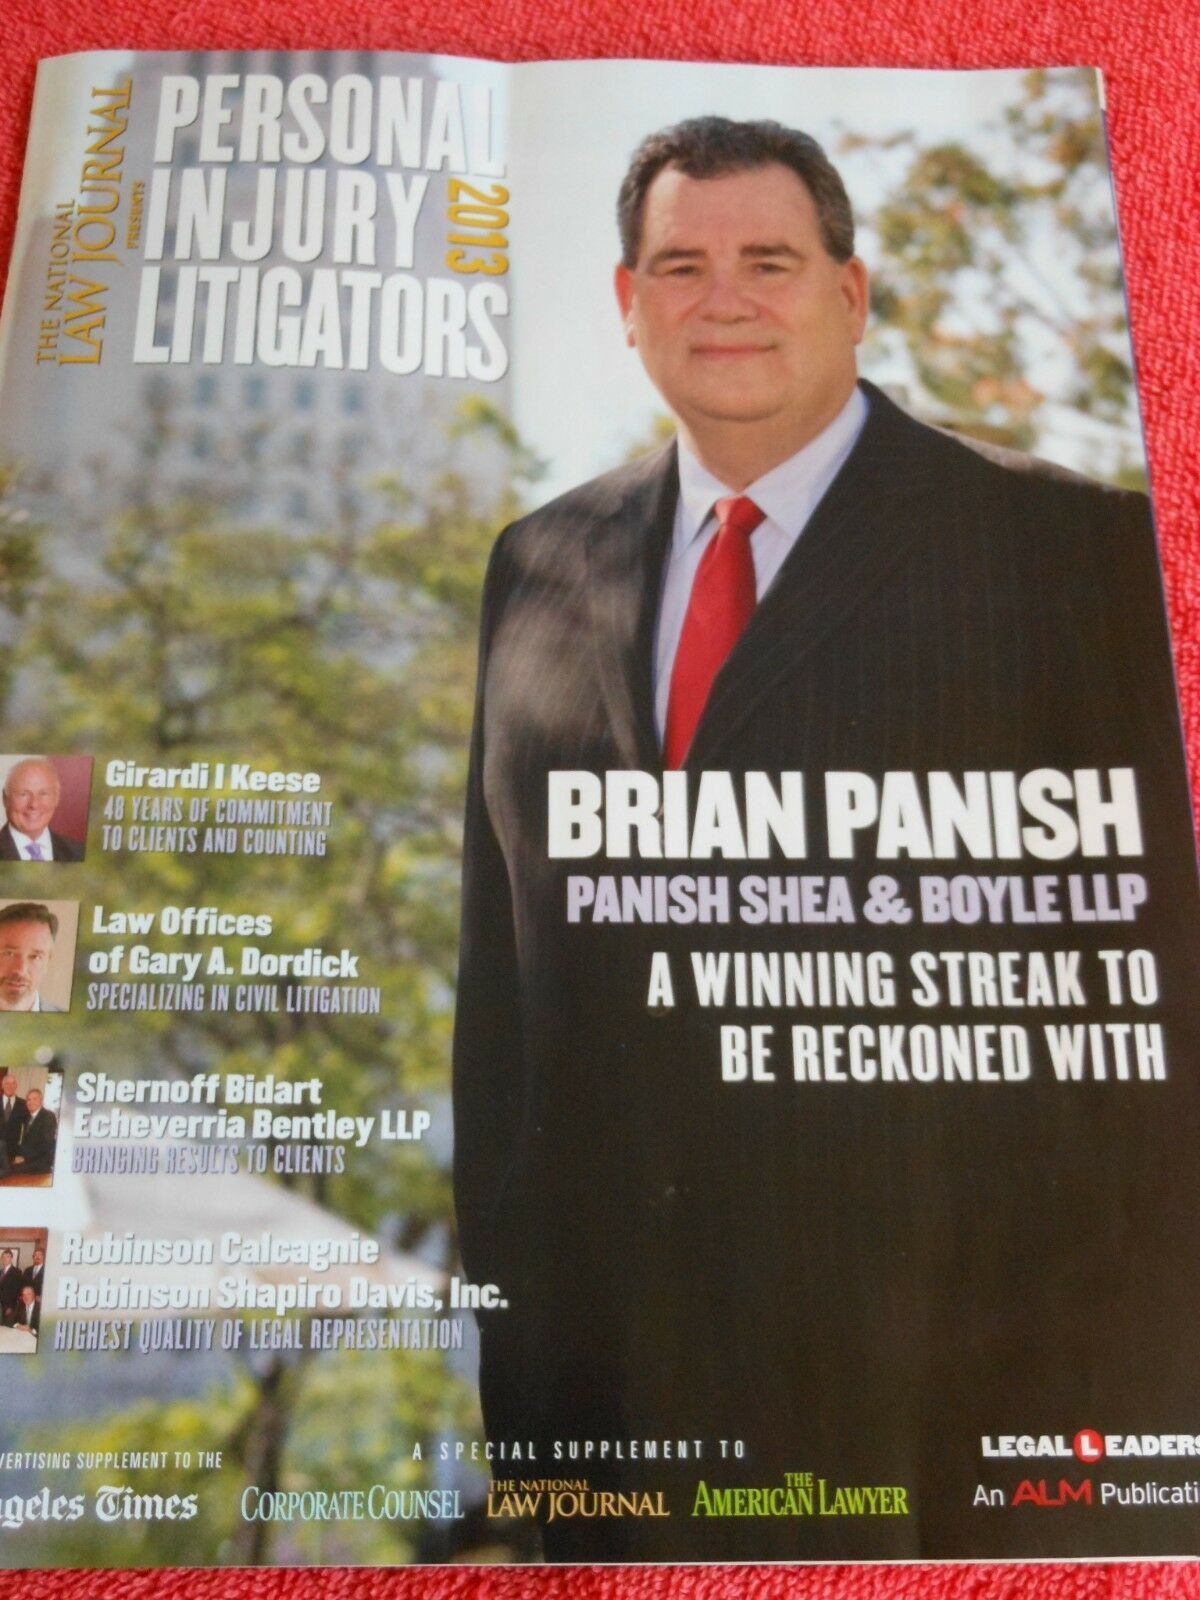 NATIONAL LAW JOURNAL PERSONAL INJURY LITIGATORS 2013 BRIAN PANISH 1